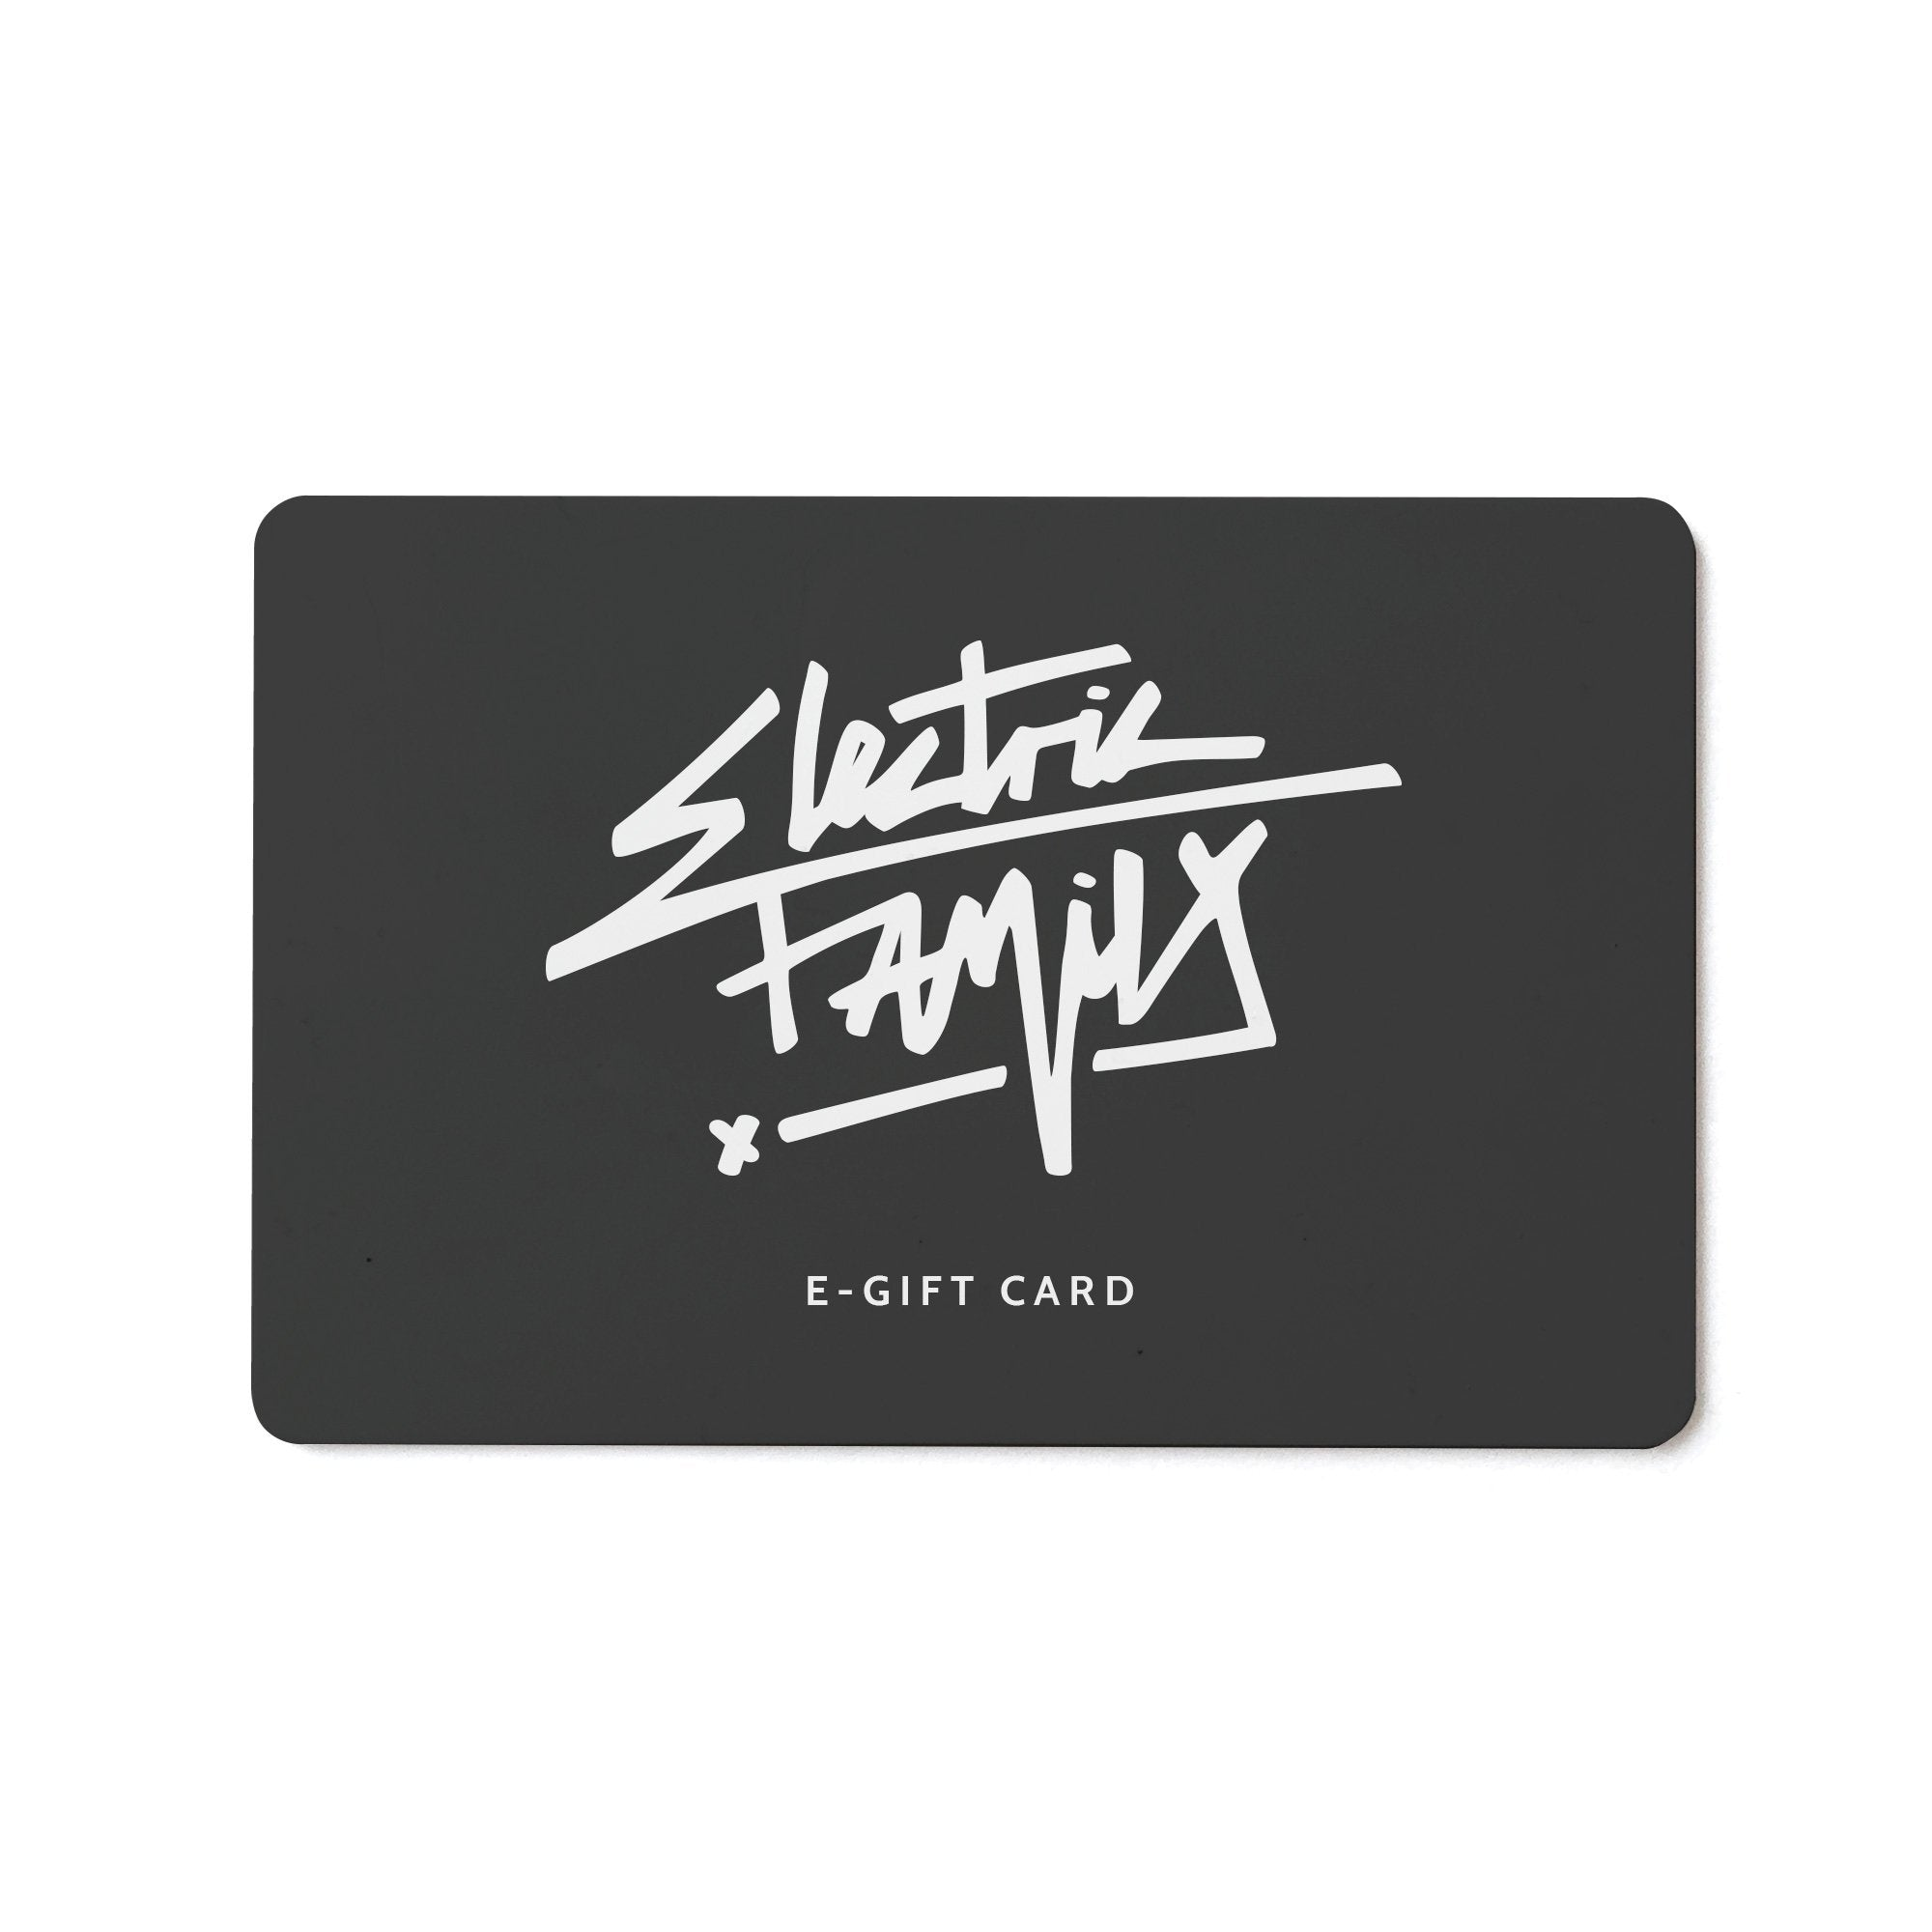 Electric family gift card gift card negle Image collections